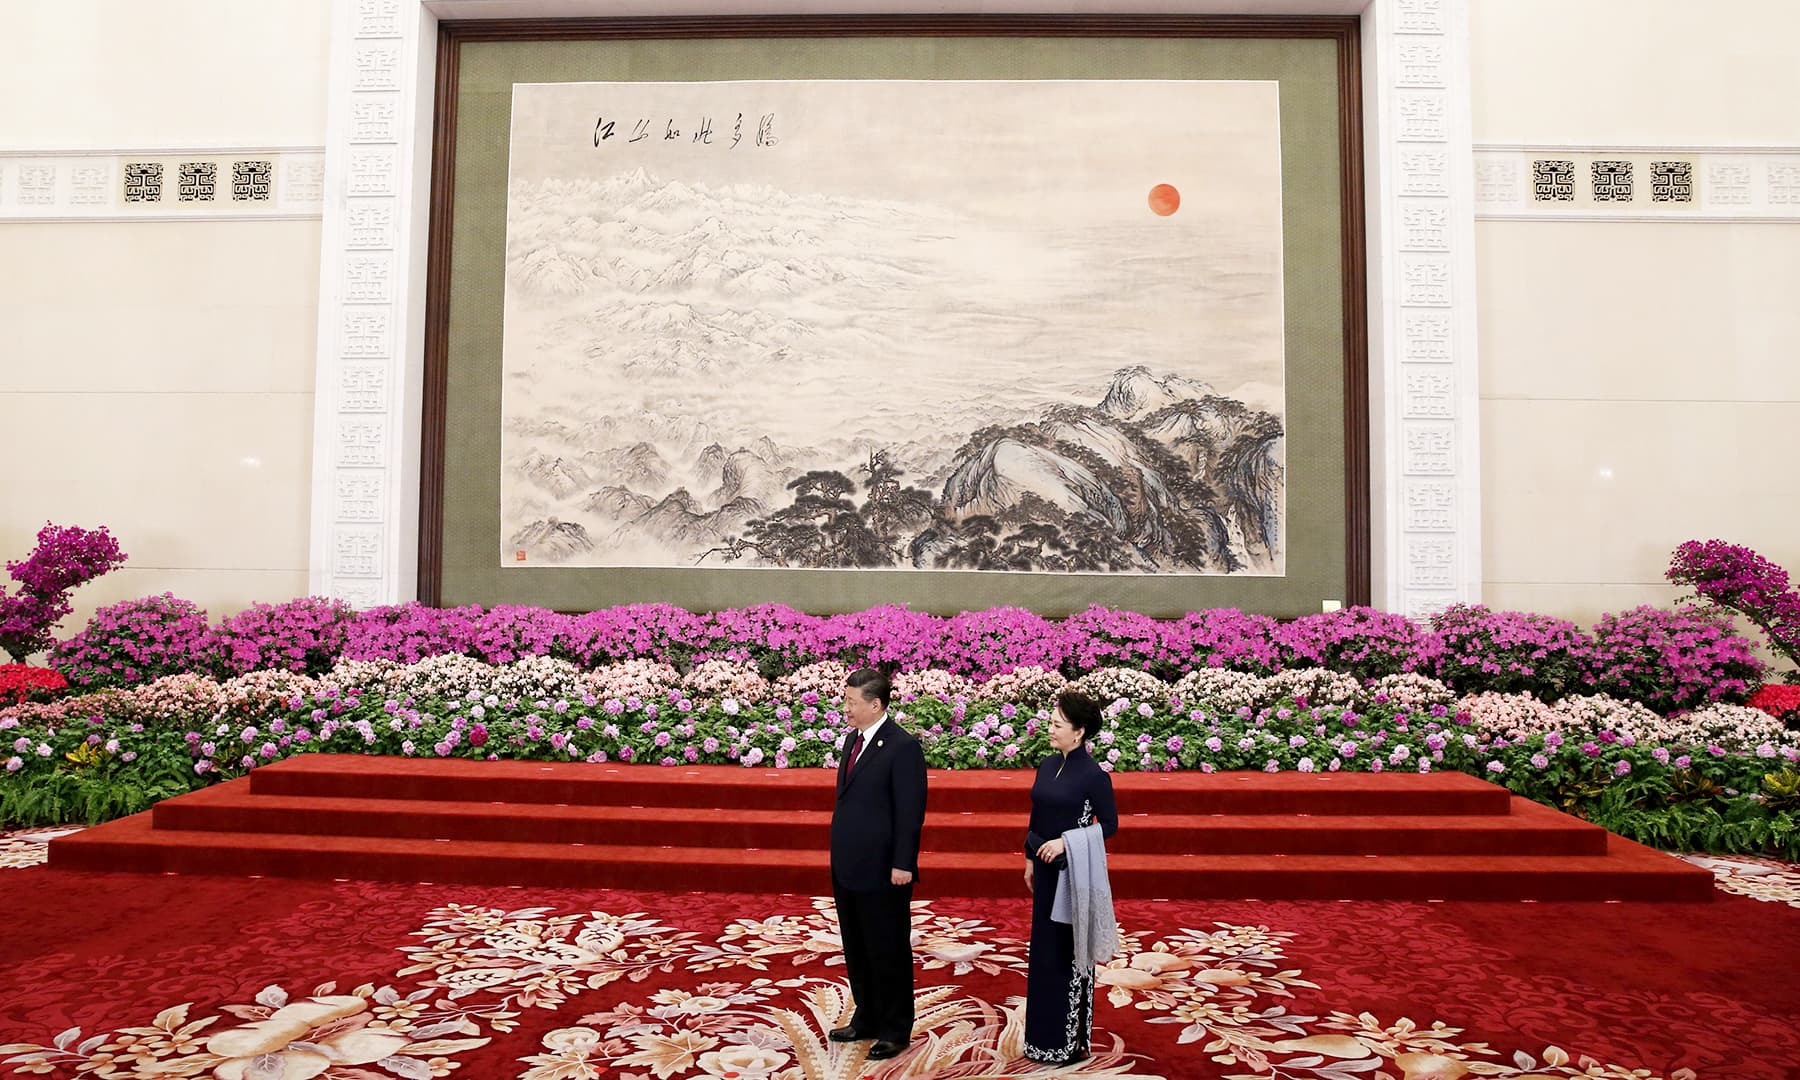 Chinese President Xi Jinping (L) and his wife Peng Liyuan wait for leaders to attend a welcome banquet for the Belt and Road Forum at the Great Hall of the People in Beijing. — AFP